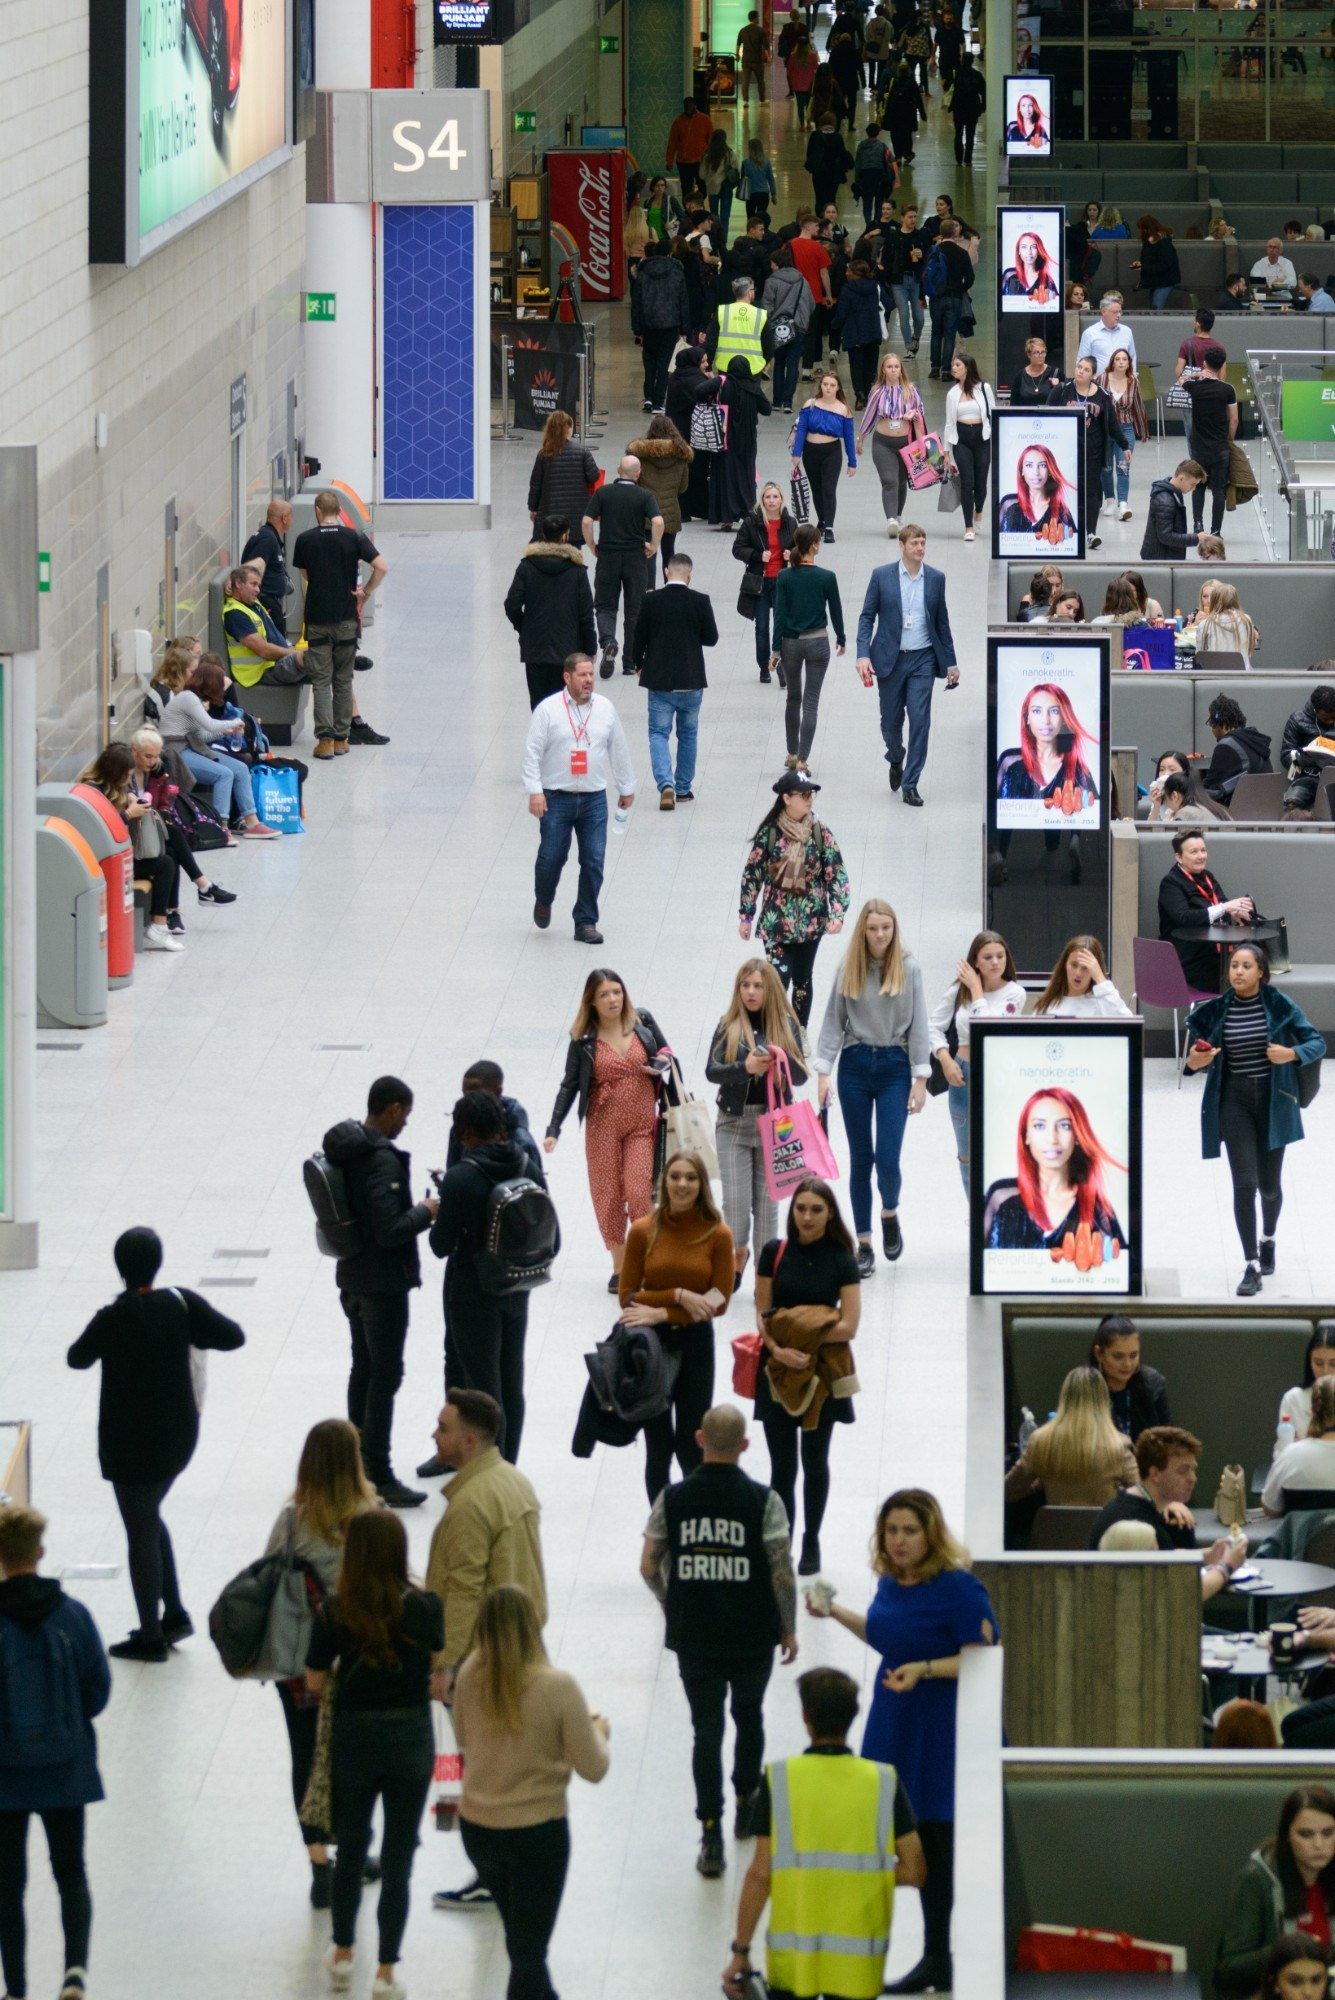 Crowd of people at ExCeL London